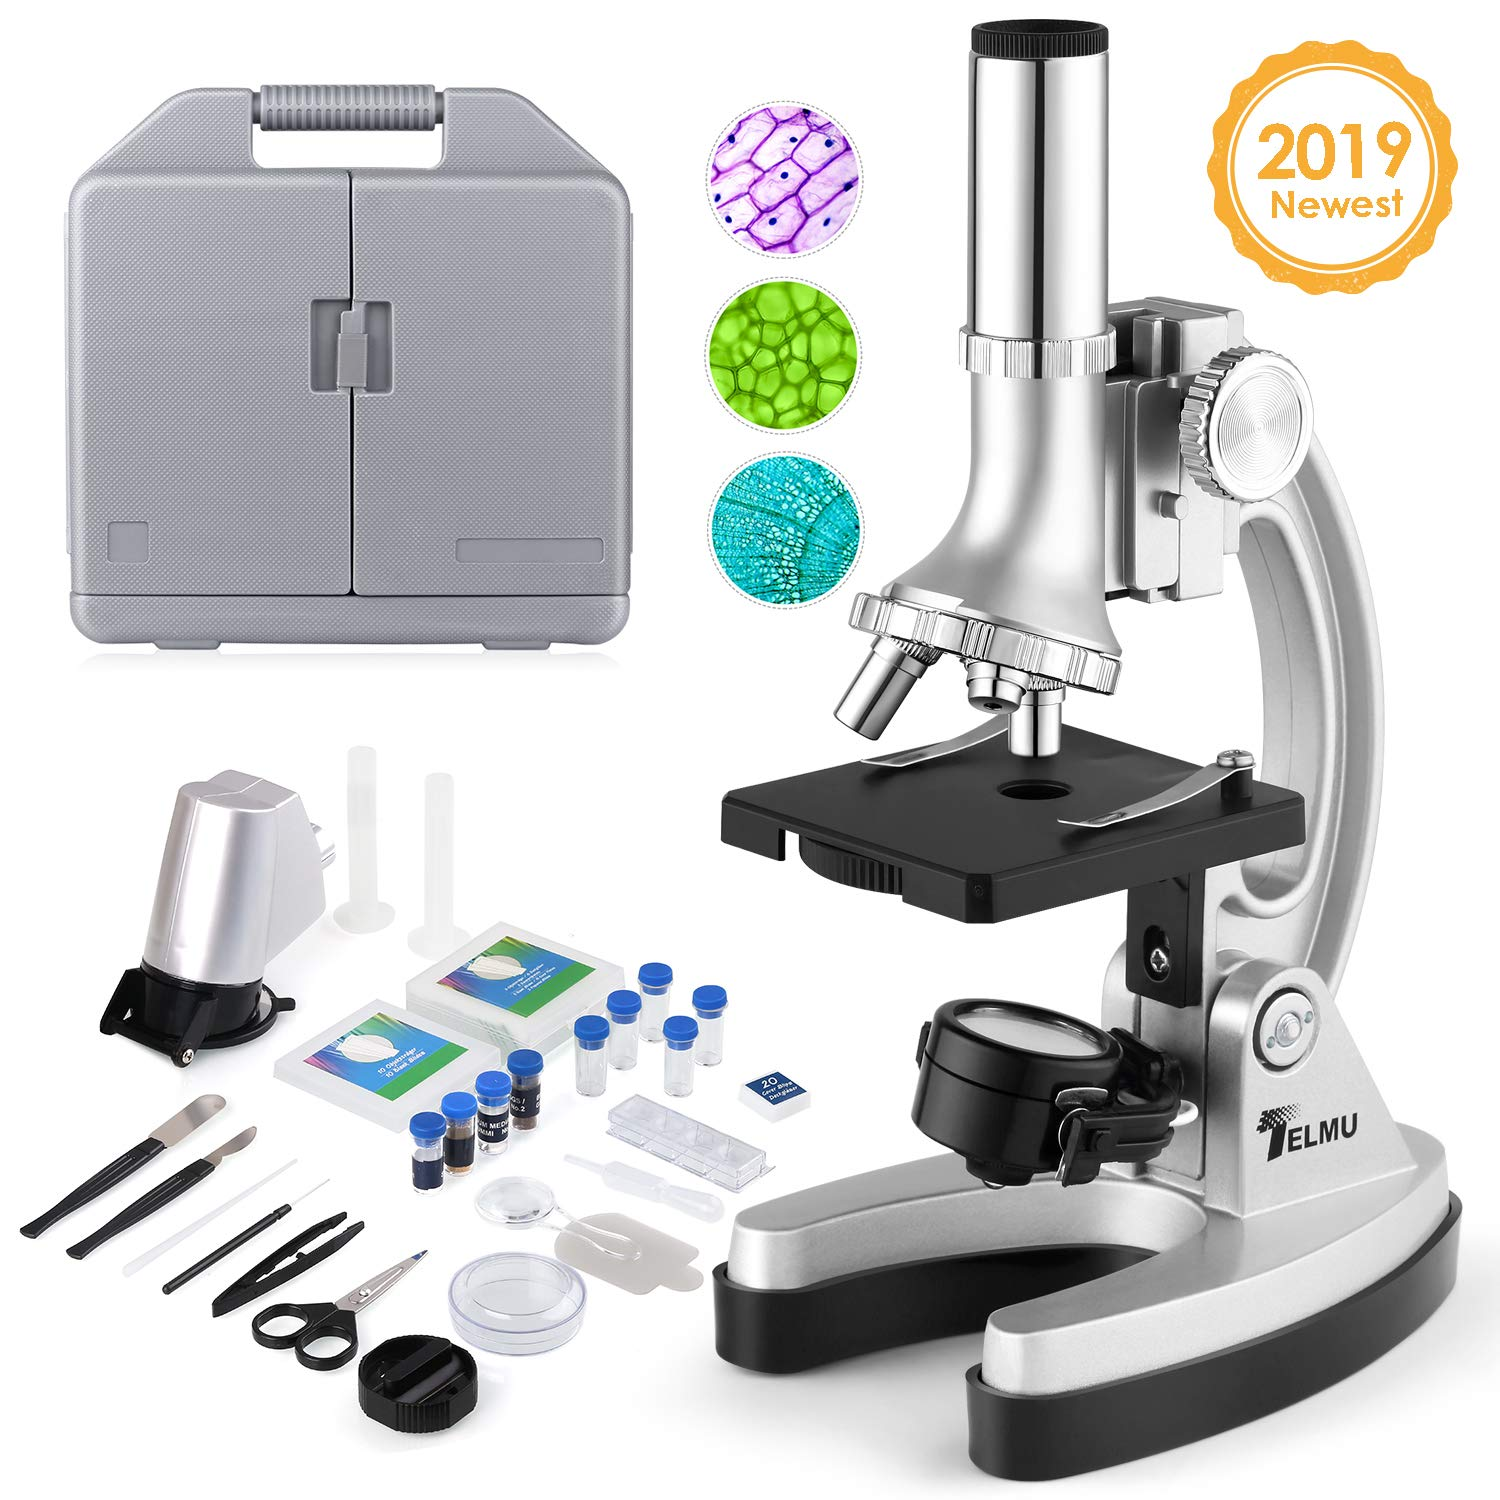 TELMU Microscope for Kids with 70pcs+ Accessory Set 300X-600X-1200X Beginner Microscope Kit with Metal Base by TELMU